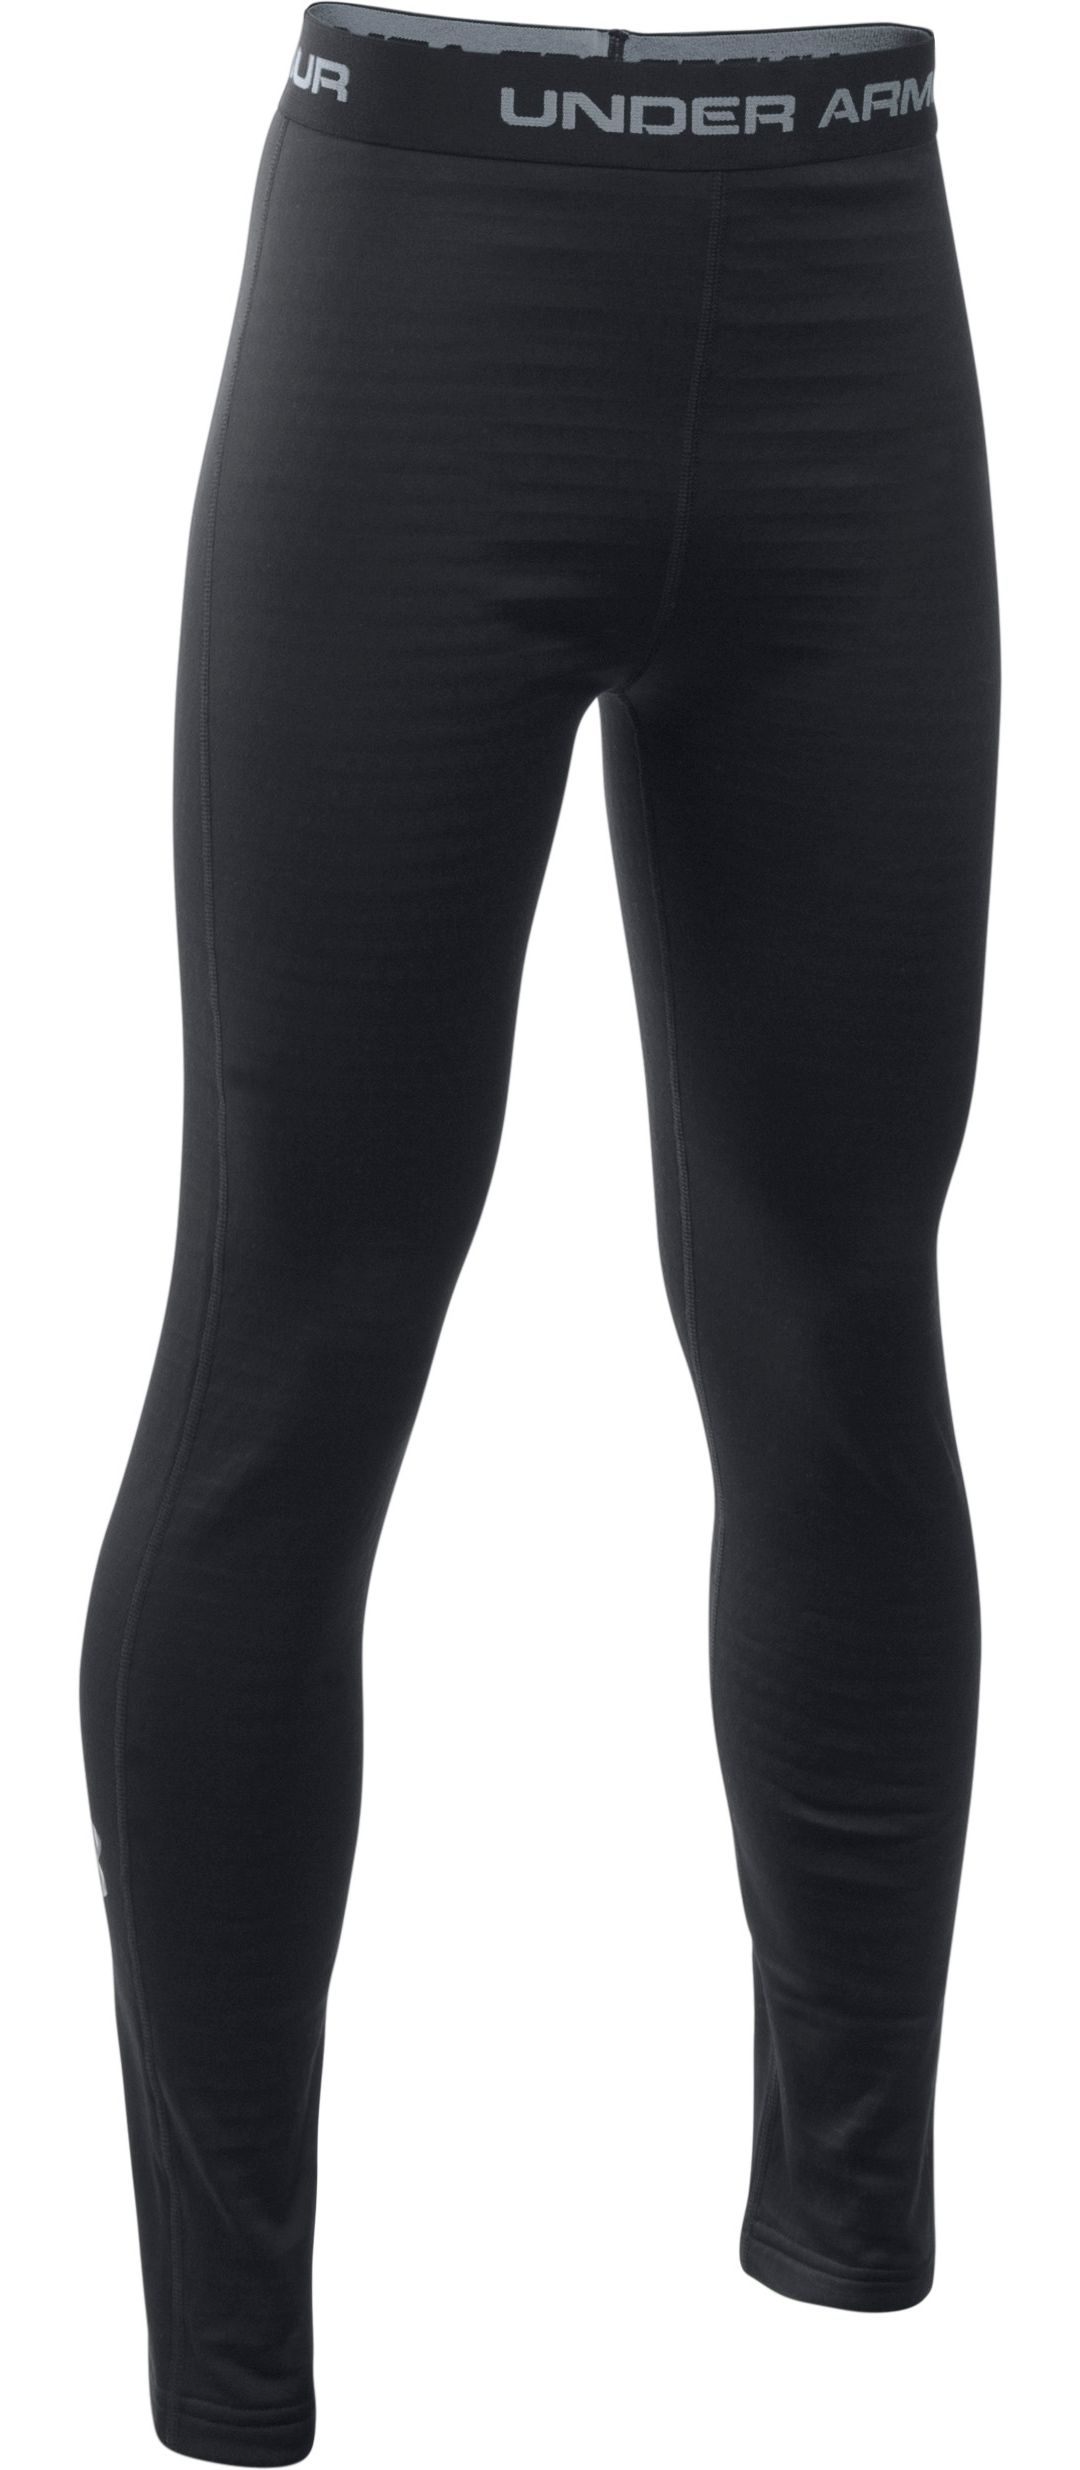 482a4f90d9010b Under Armour Youth Base 2.0 Leggings | DICK'S Sporting Goods